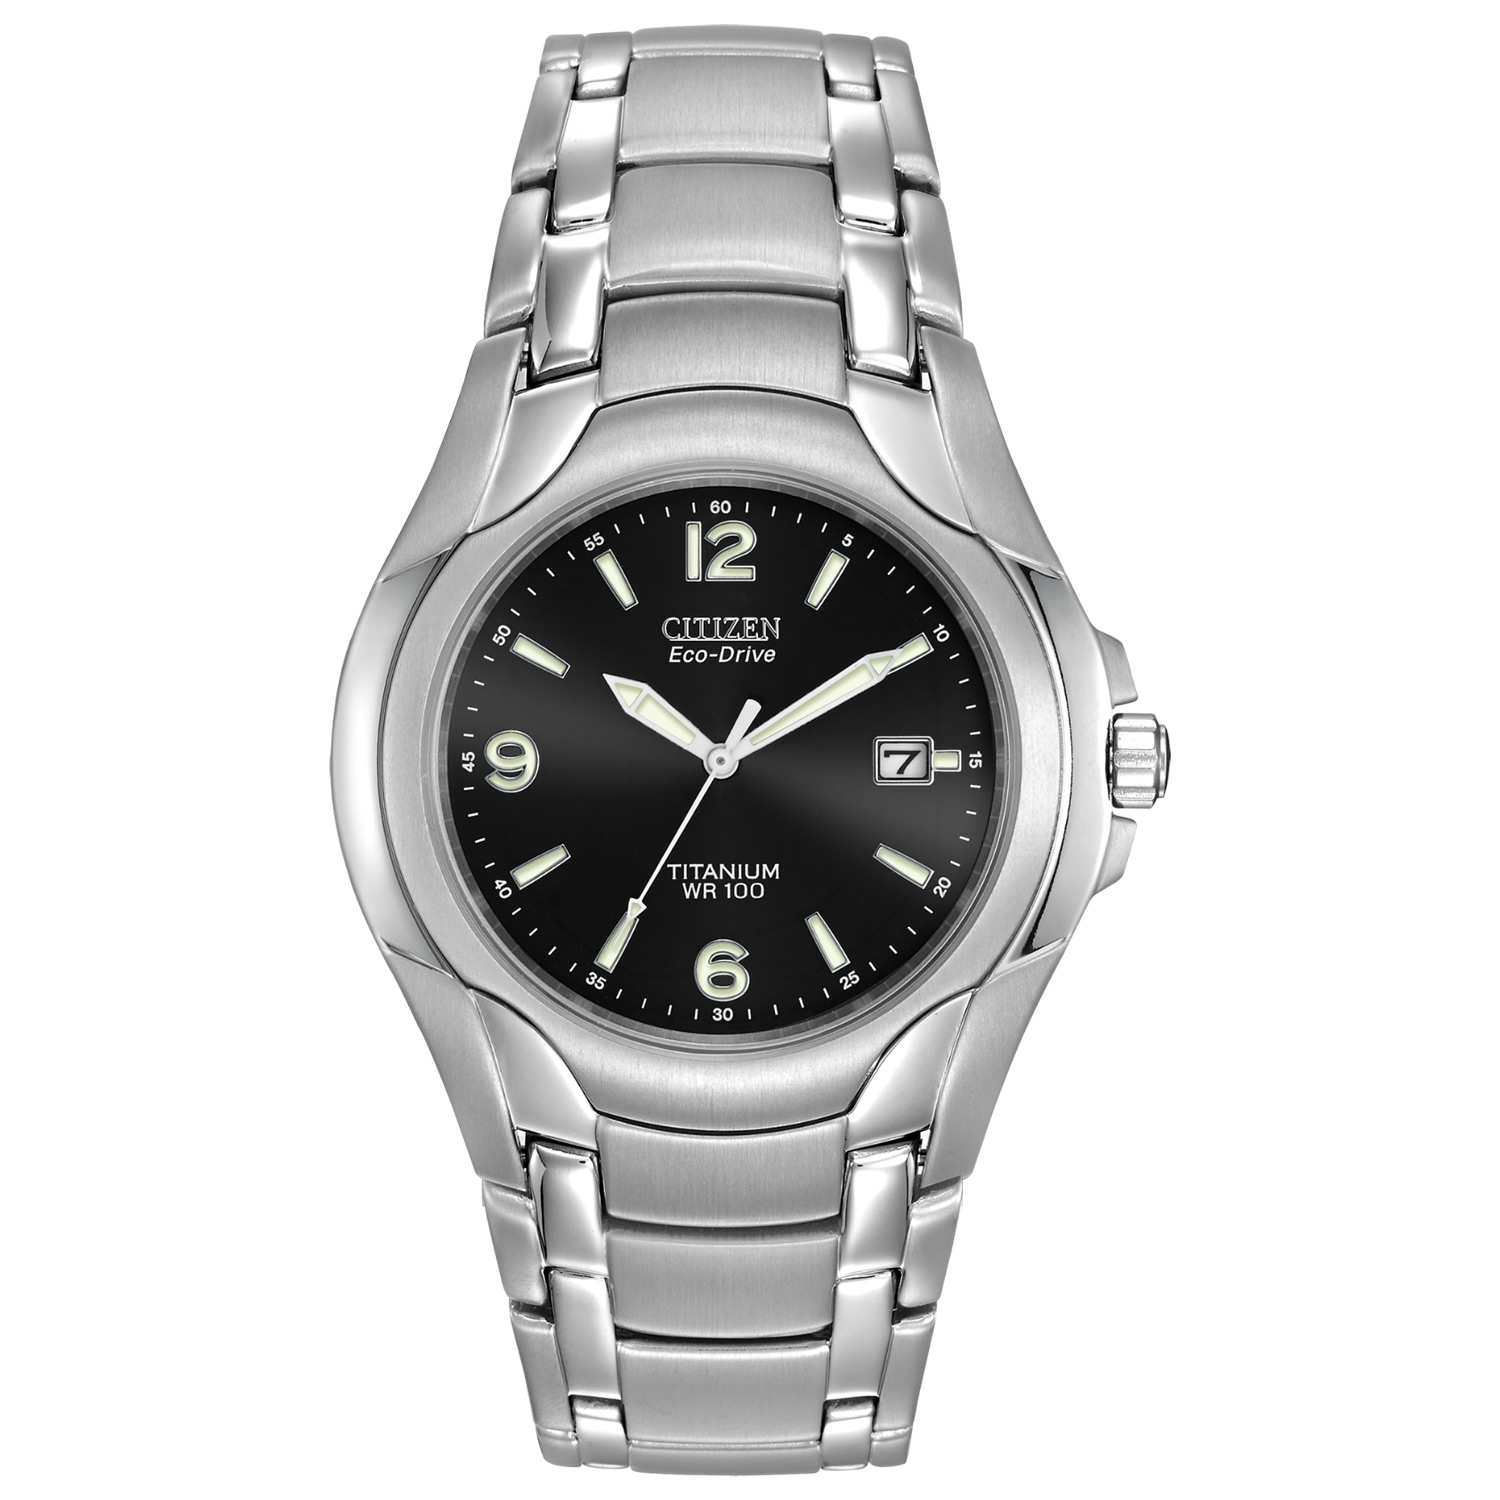 Bm6060 57f citizen eco drive watch wr100 tq diamonds for Watches zales